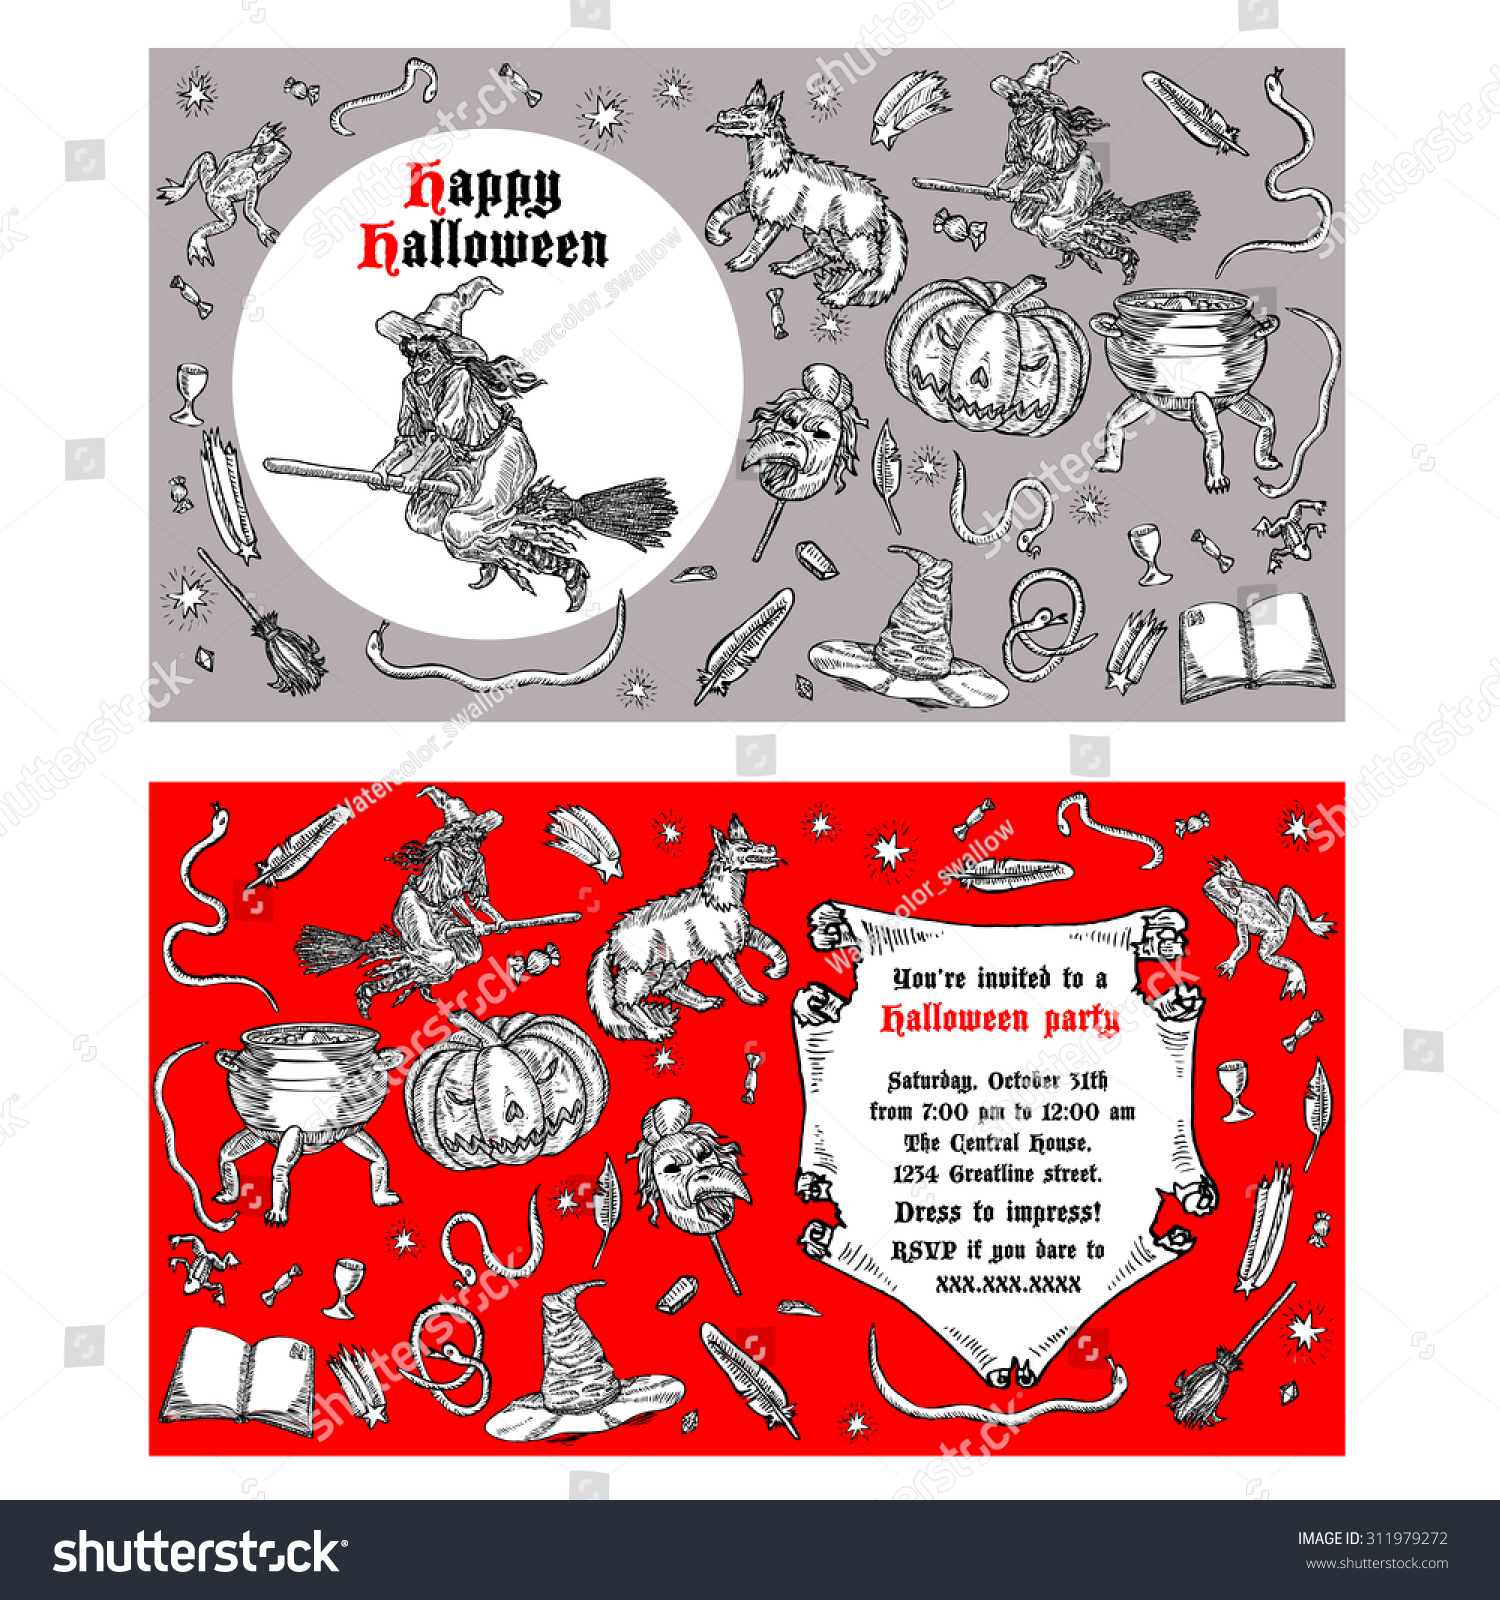 Medieval Engraving Style Halloween Invitation Ink Stock Vector ...